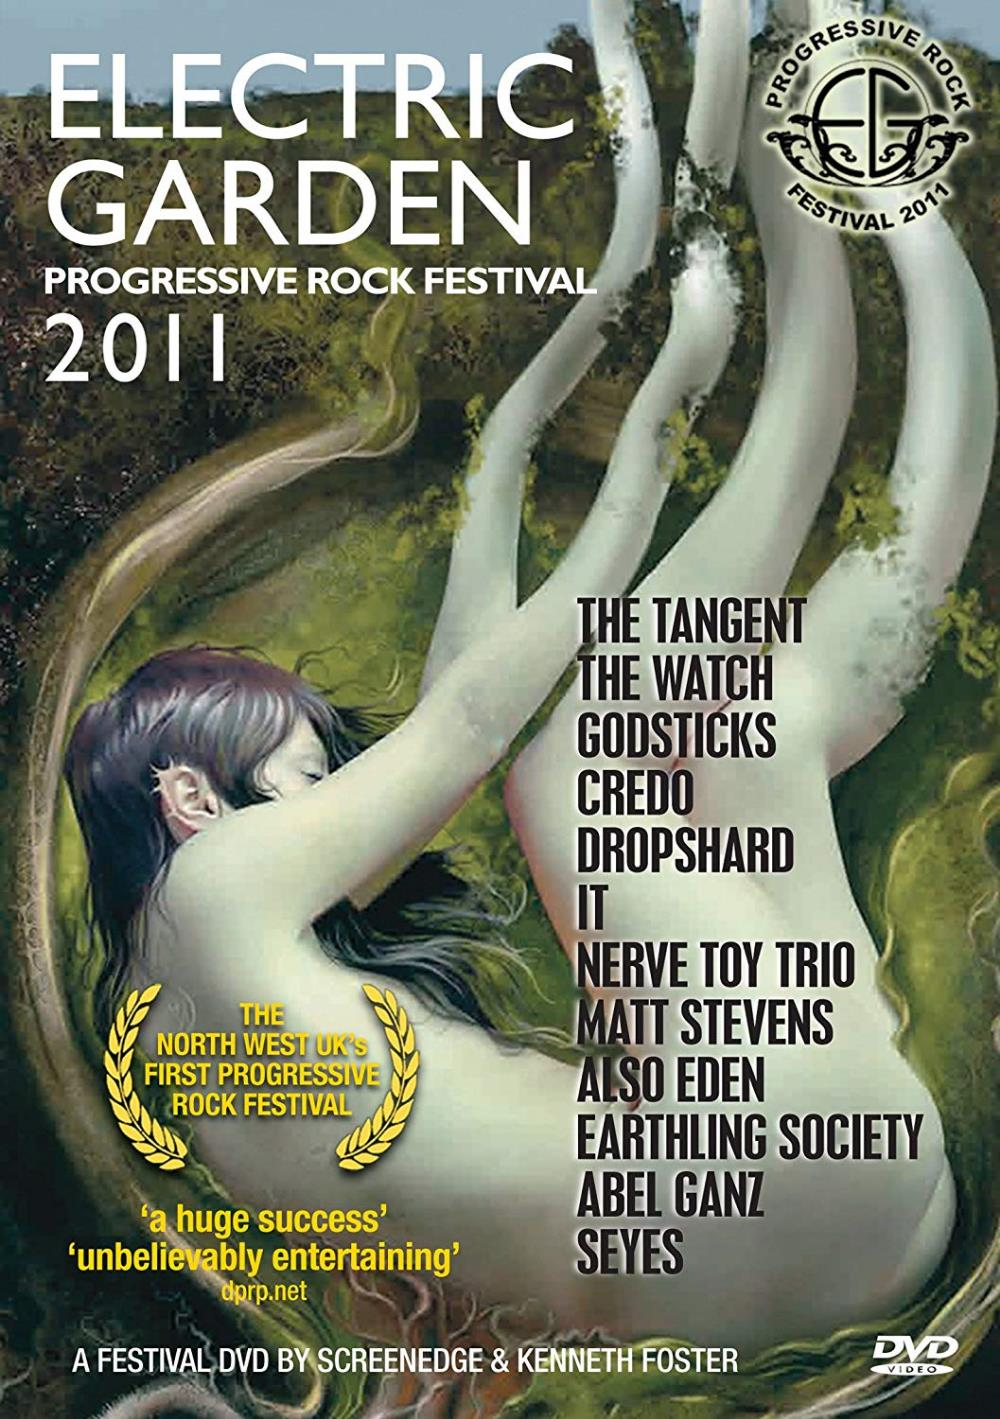 Electric Garden Progressive Rock Festival 2011 by VARIOUS ARTISTS (CONCEPT ALBUMS & THEMED COMPILATIONS) album cover